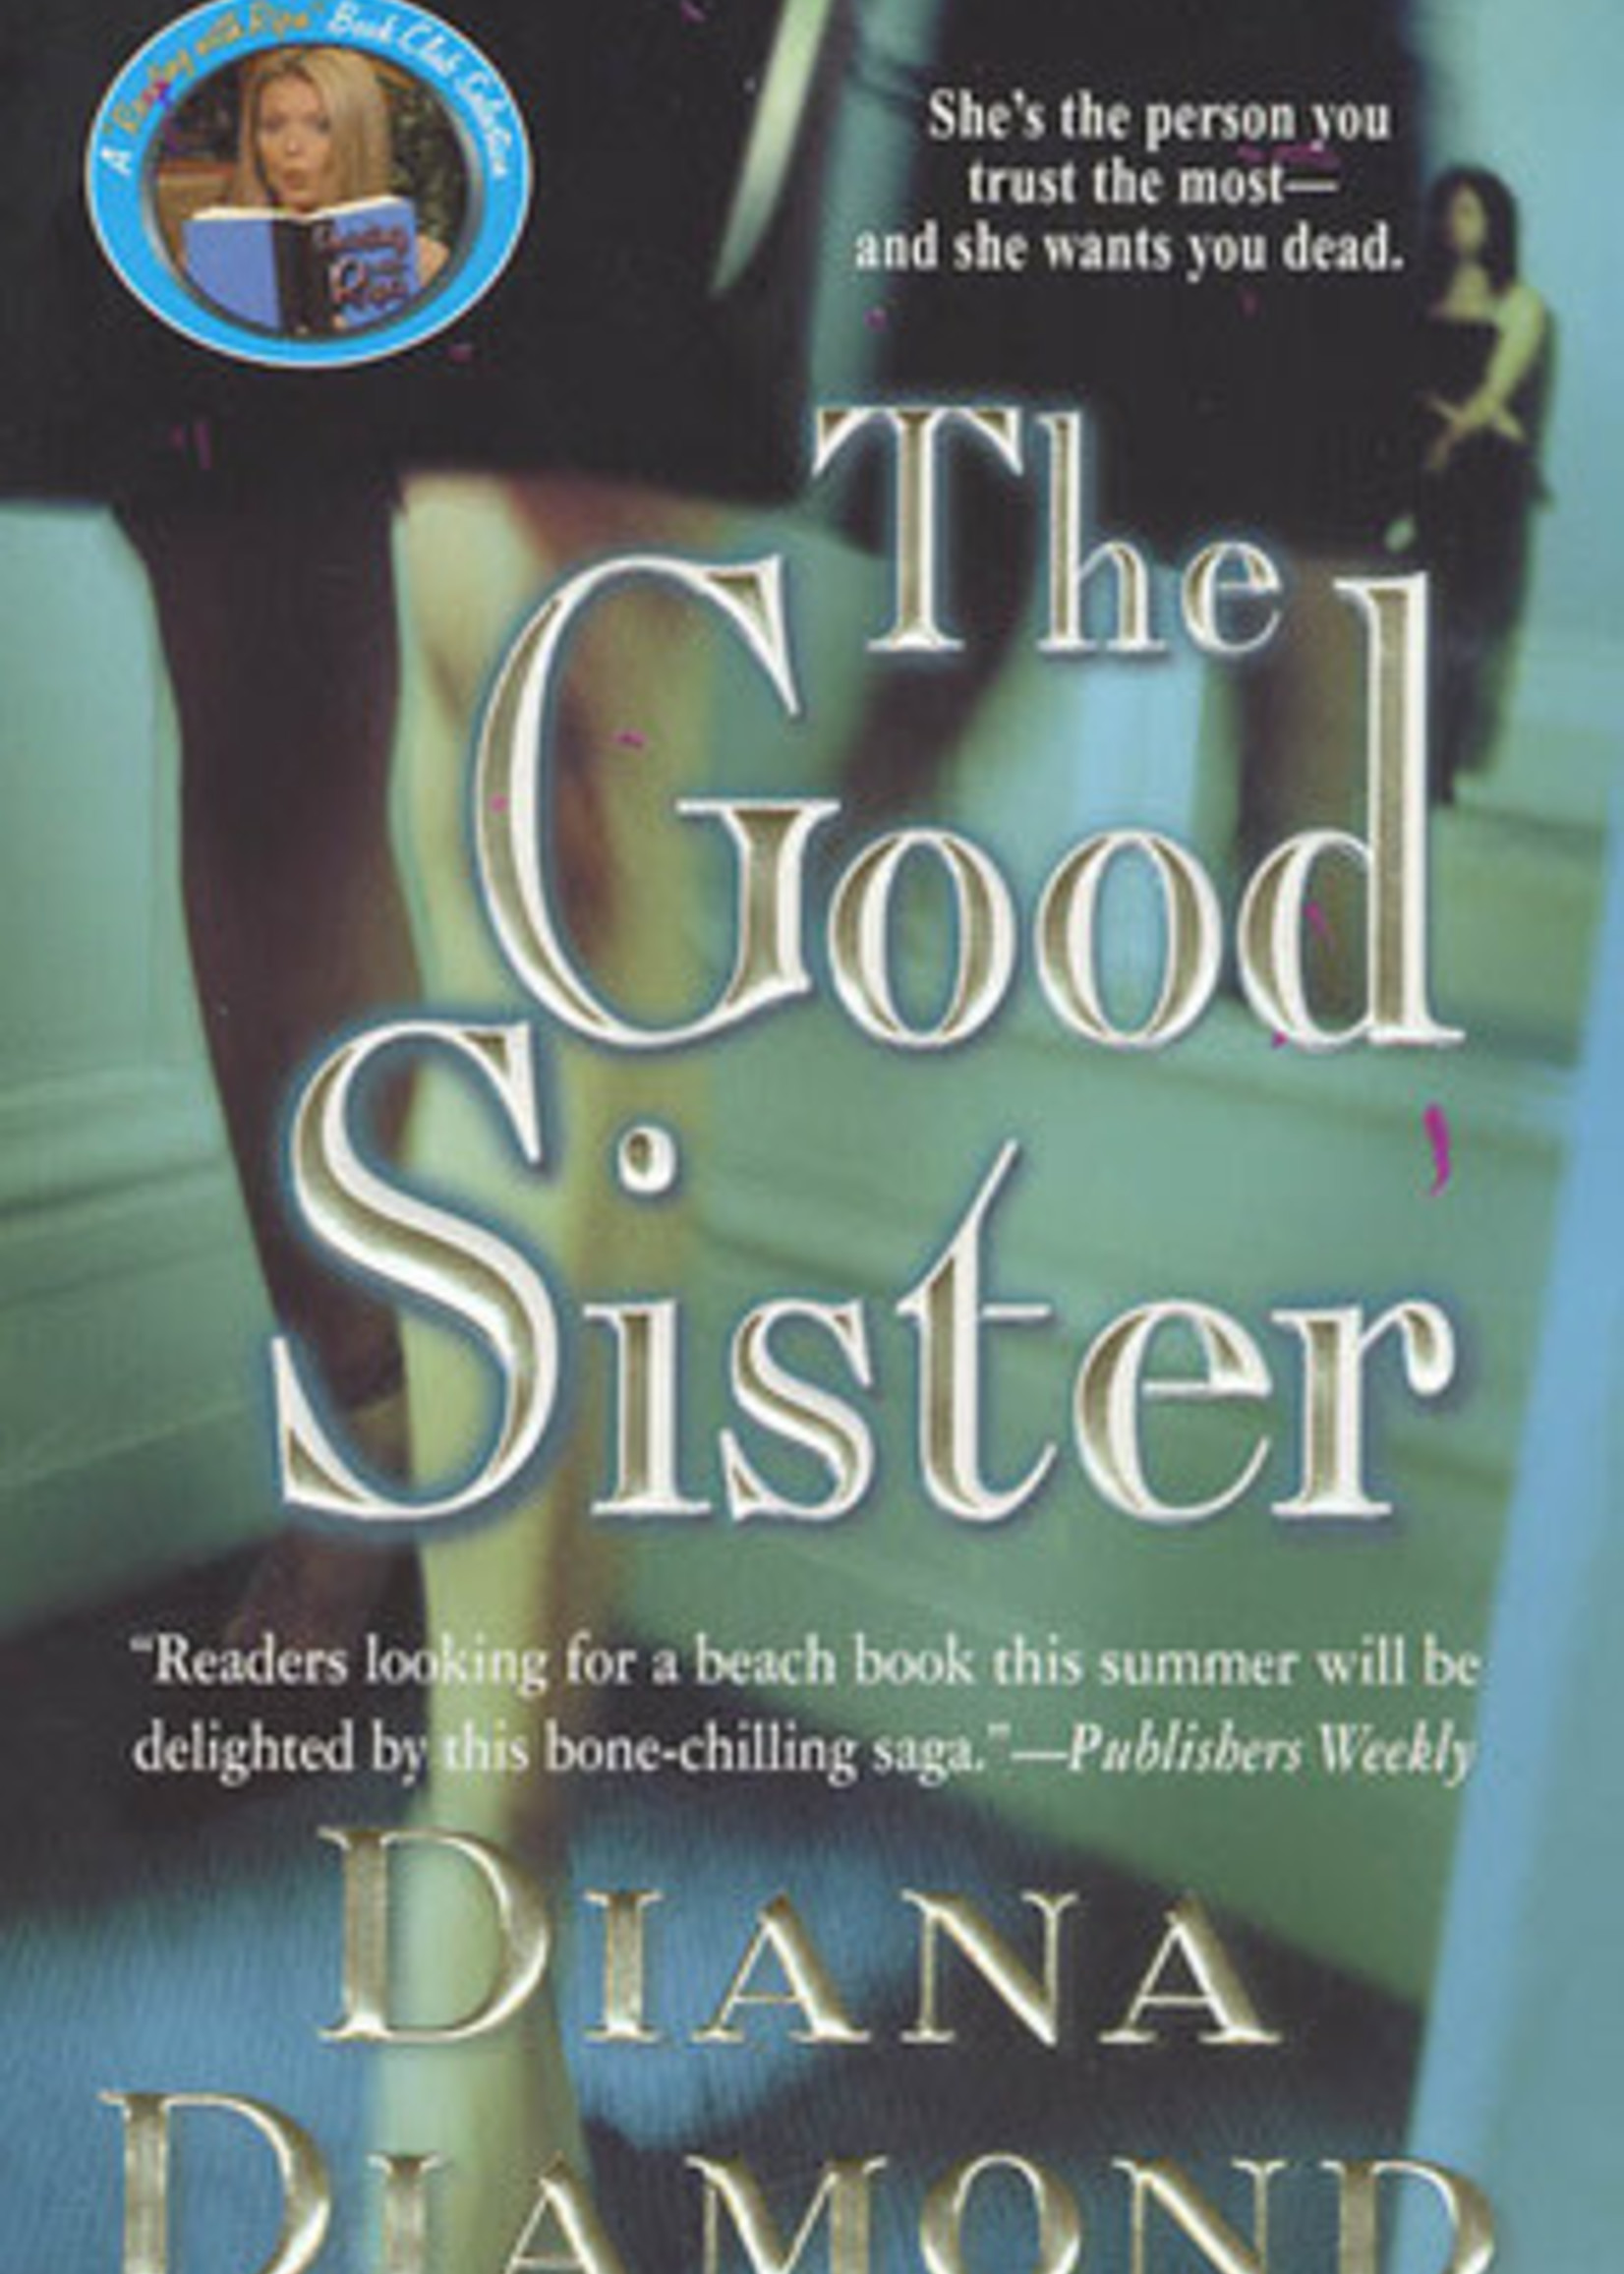 USED - The Good Sister by Diana Diamond